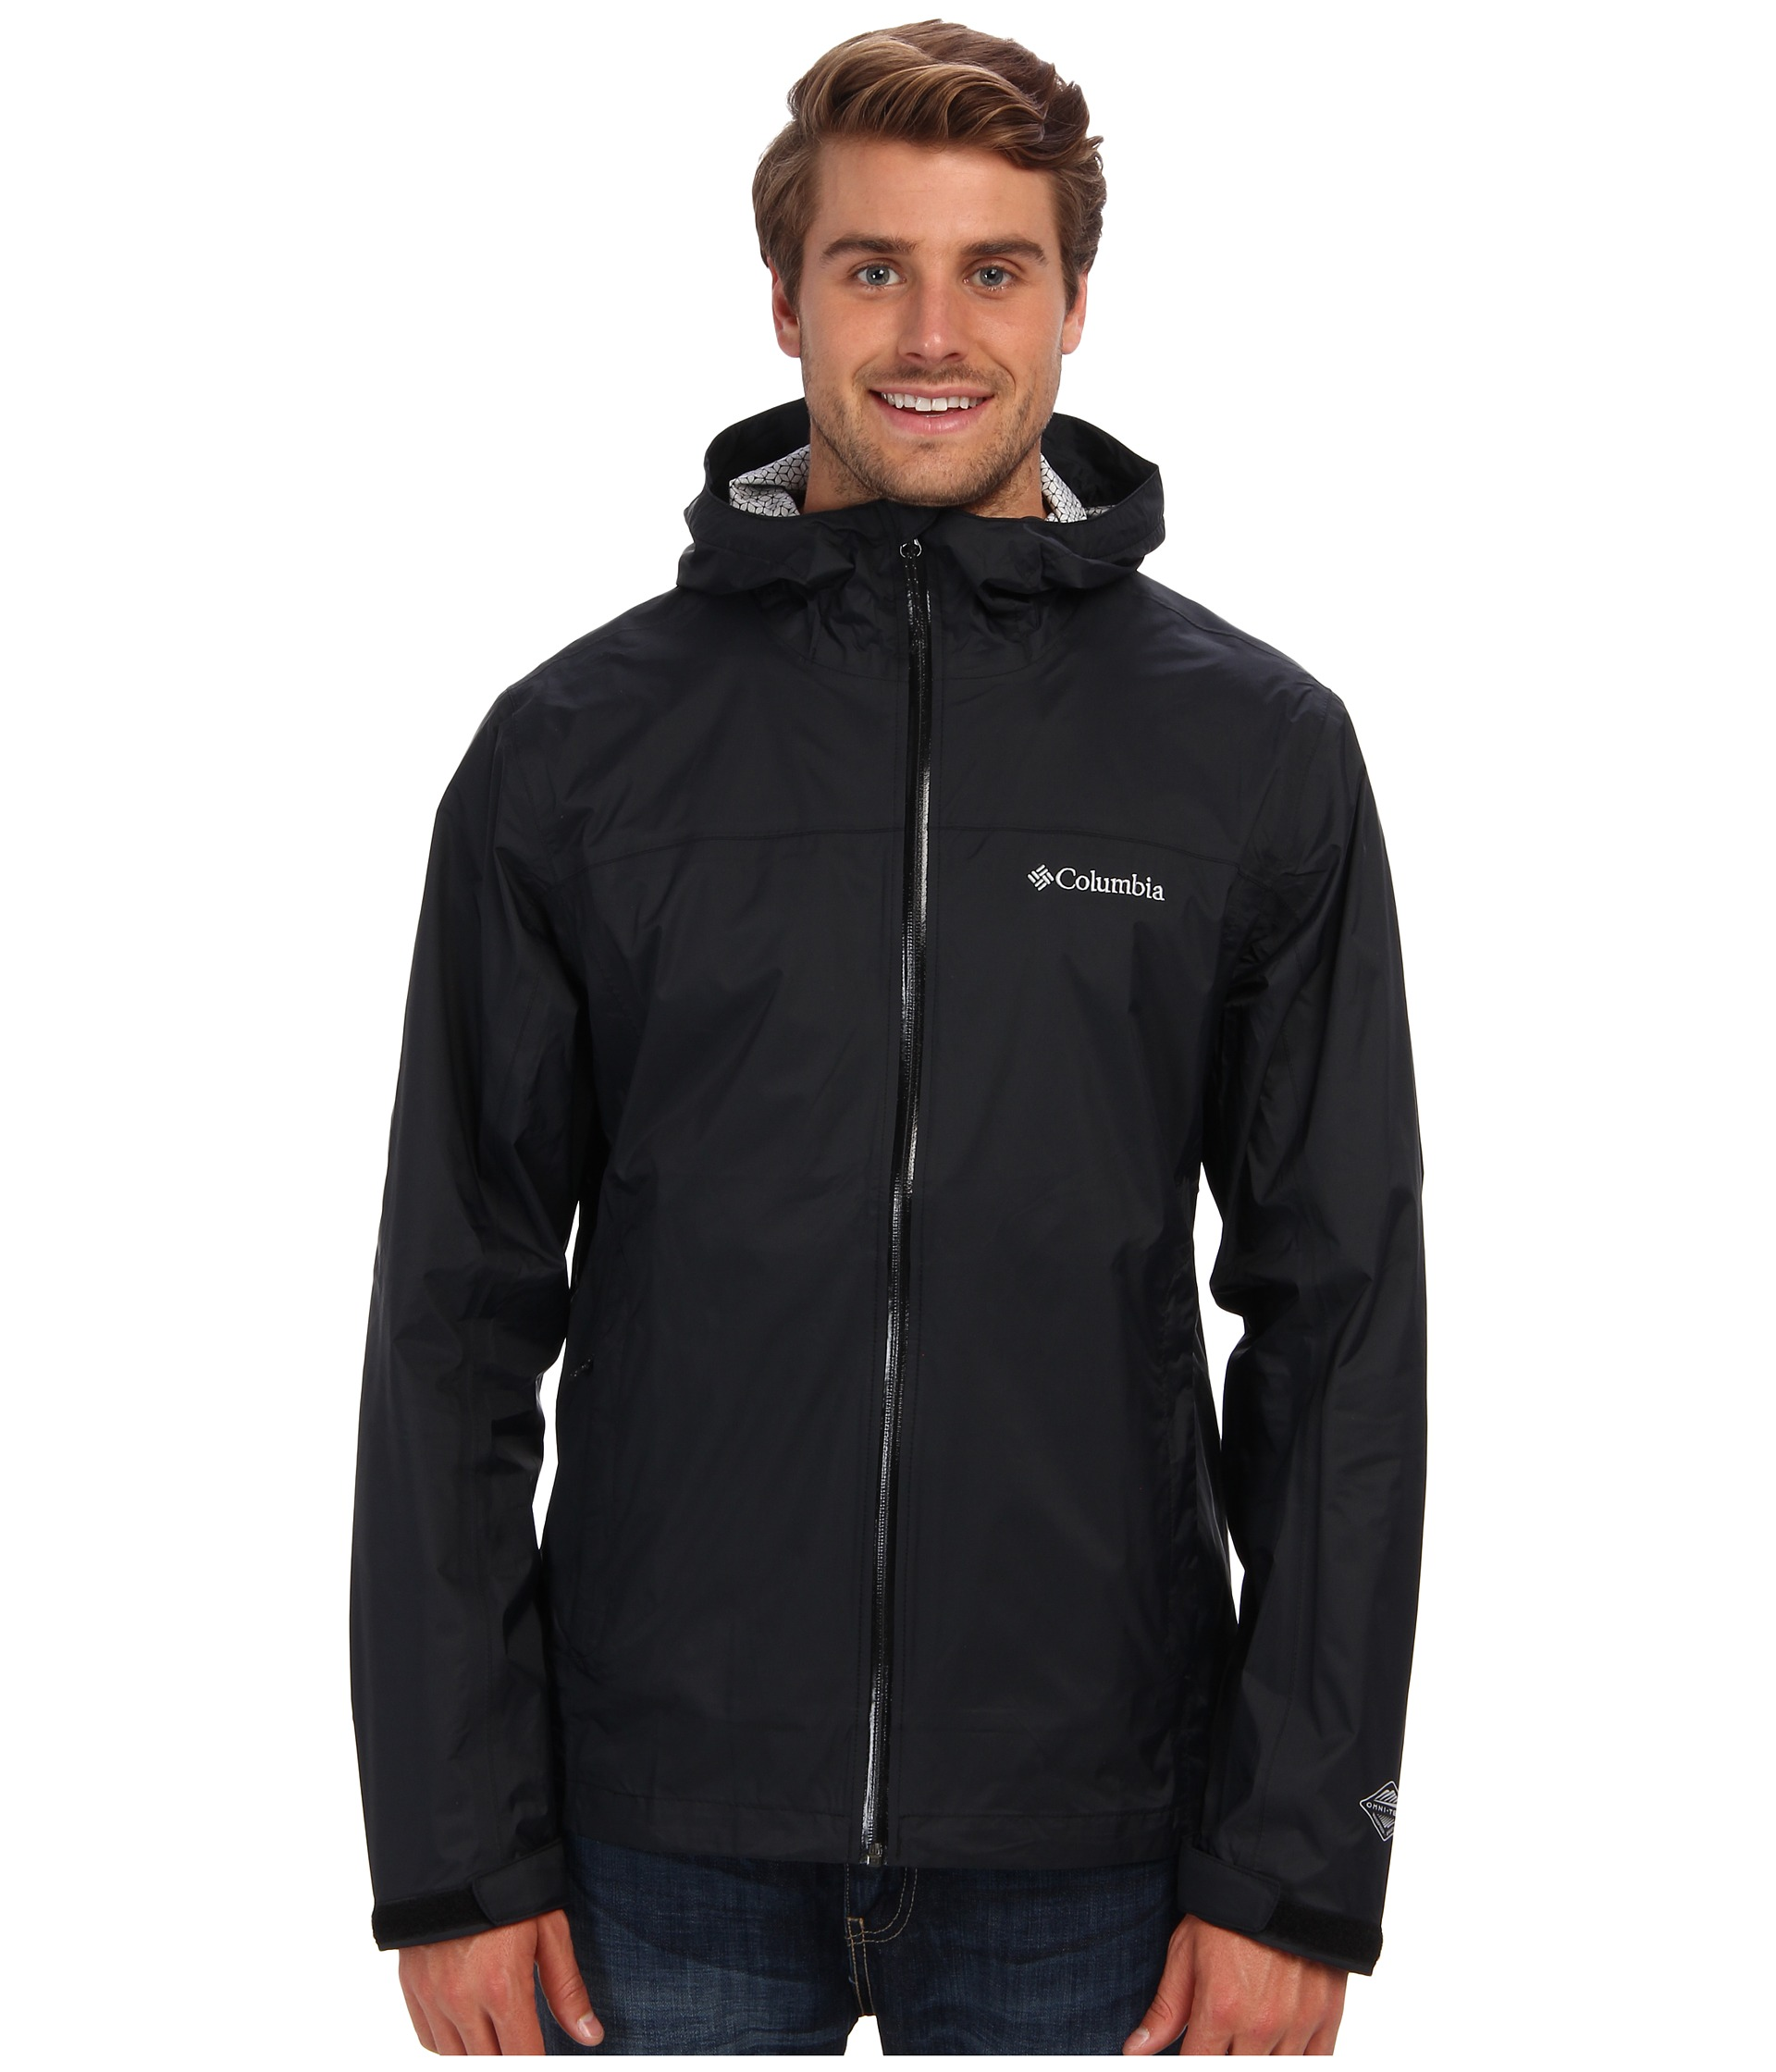 Mens jacket columbia